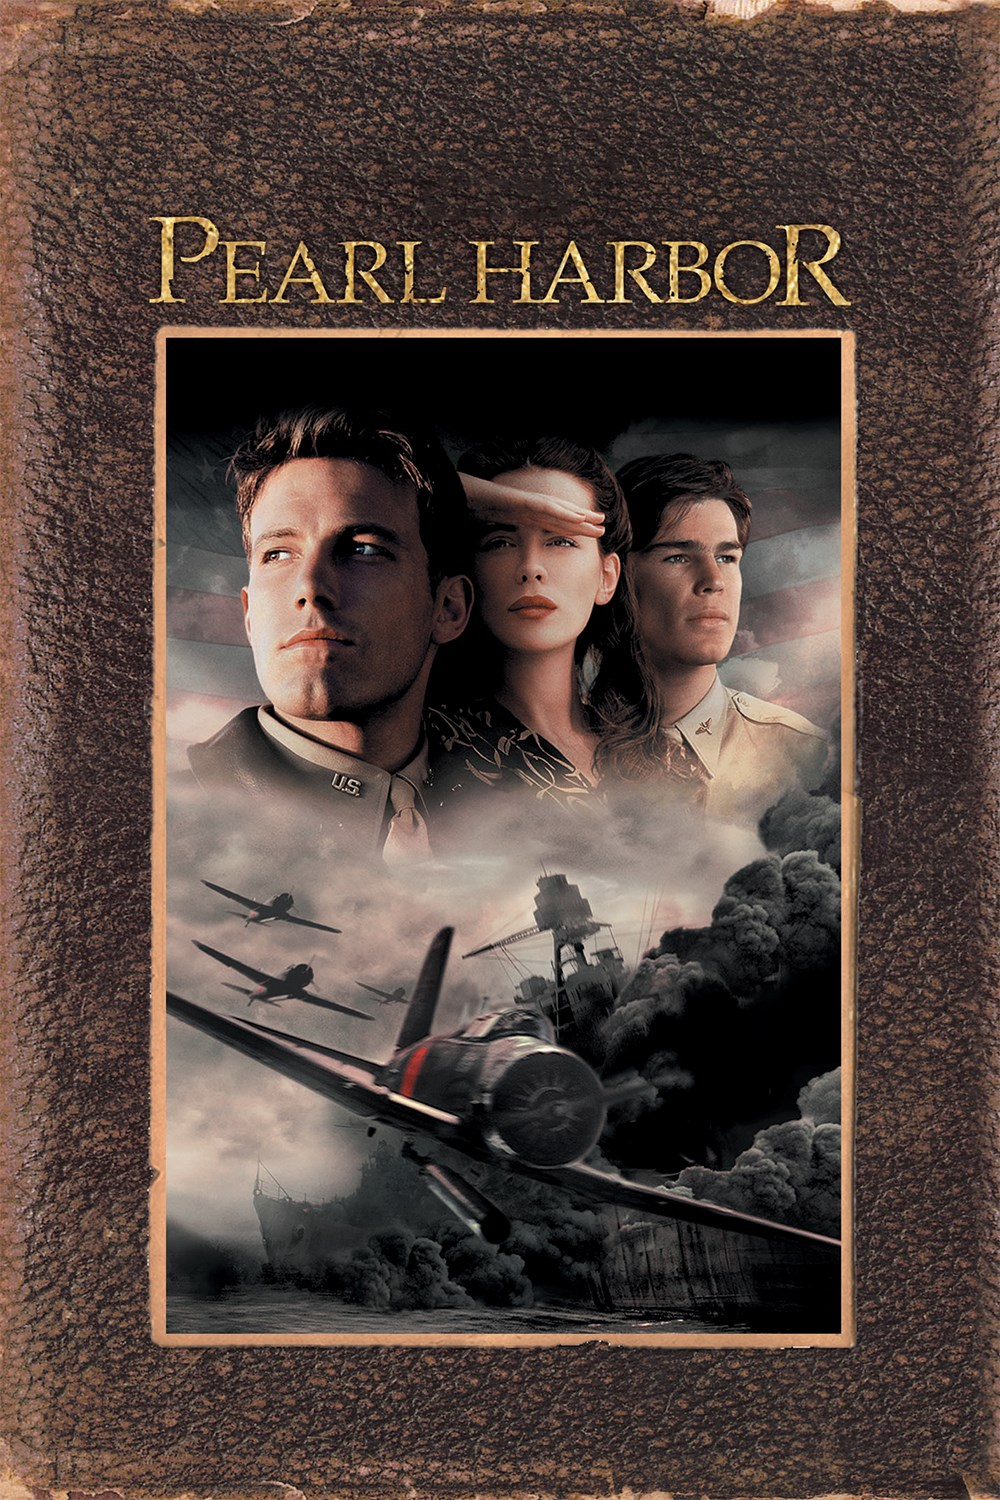 Film review on pearl harbor